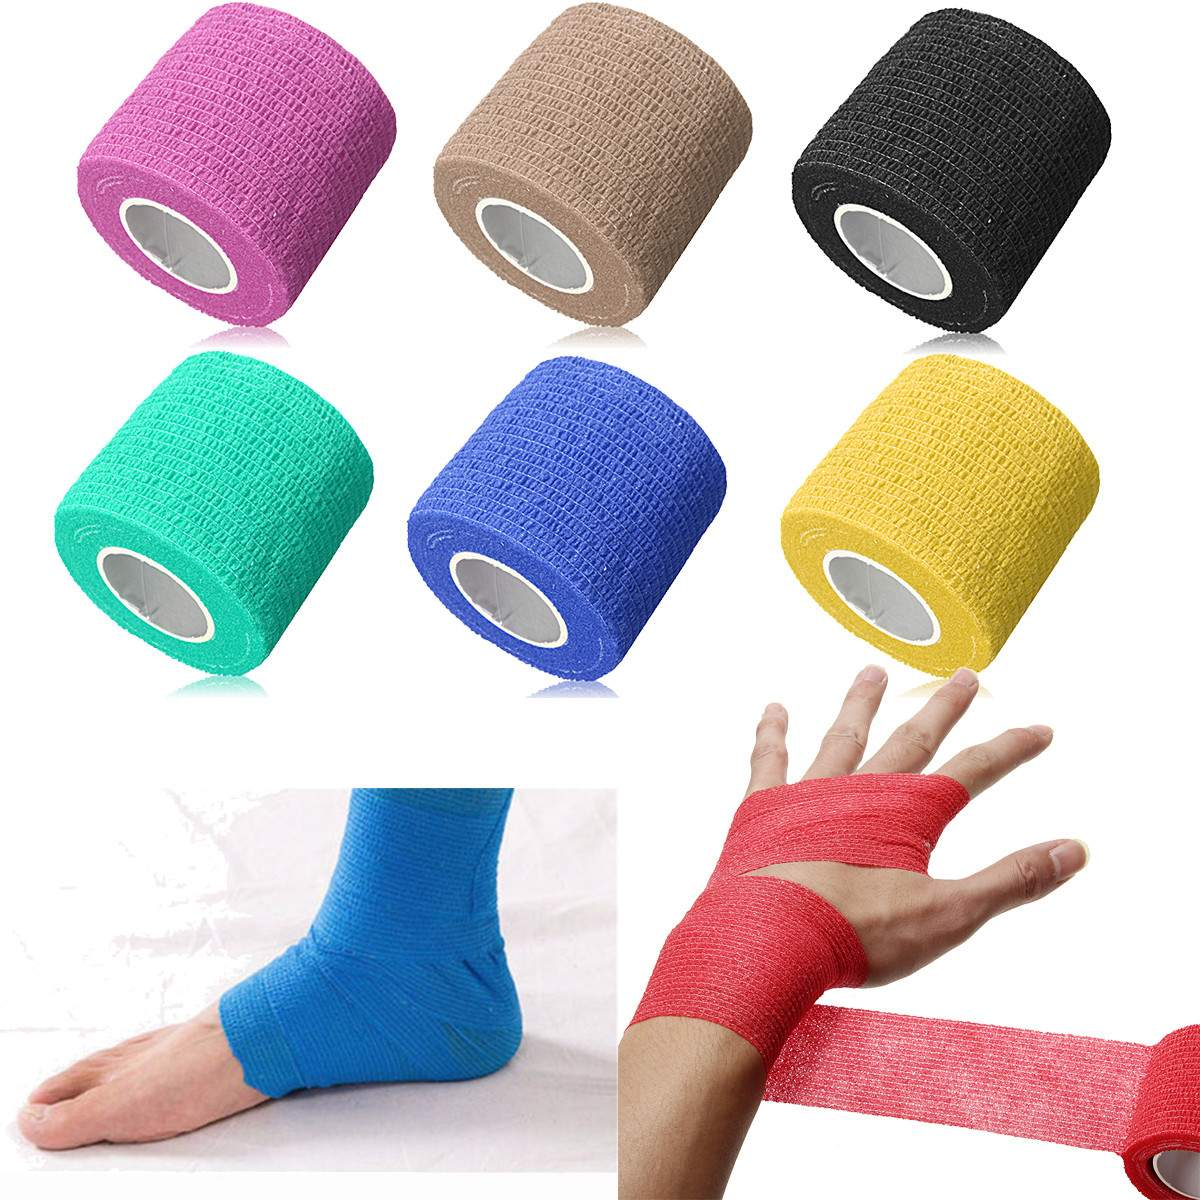 Security & Protection New Security Protection Waterproof Self-adhesive Cshesive Bandages Elastic Wrap First Aid Sports Body Gauze Vet Medical Tape 100% Original